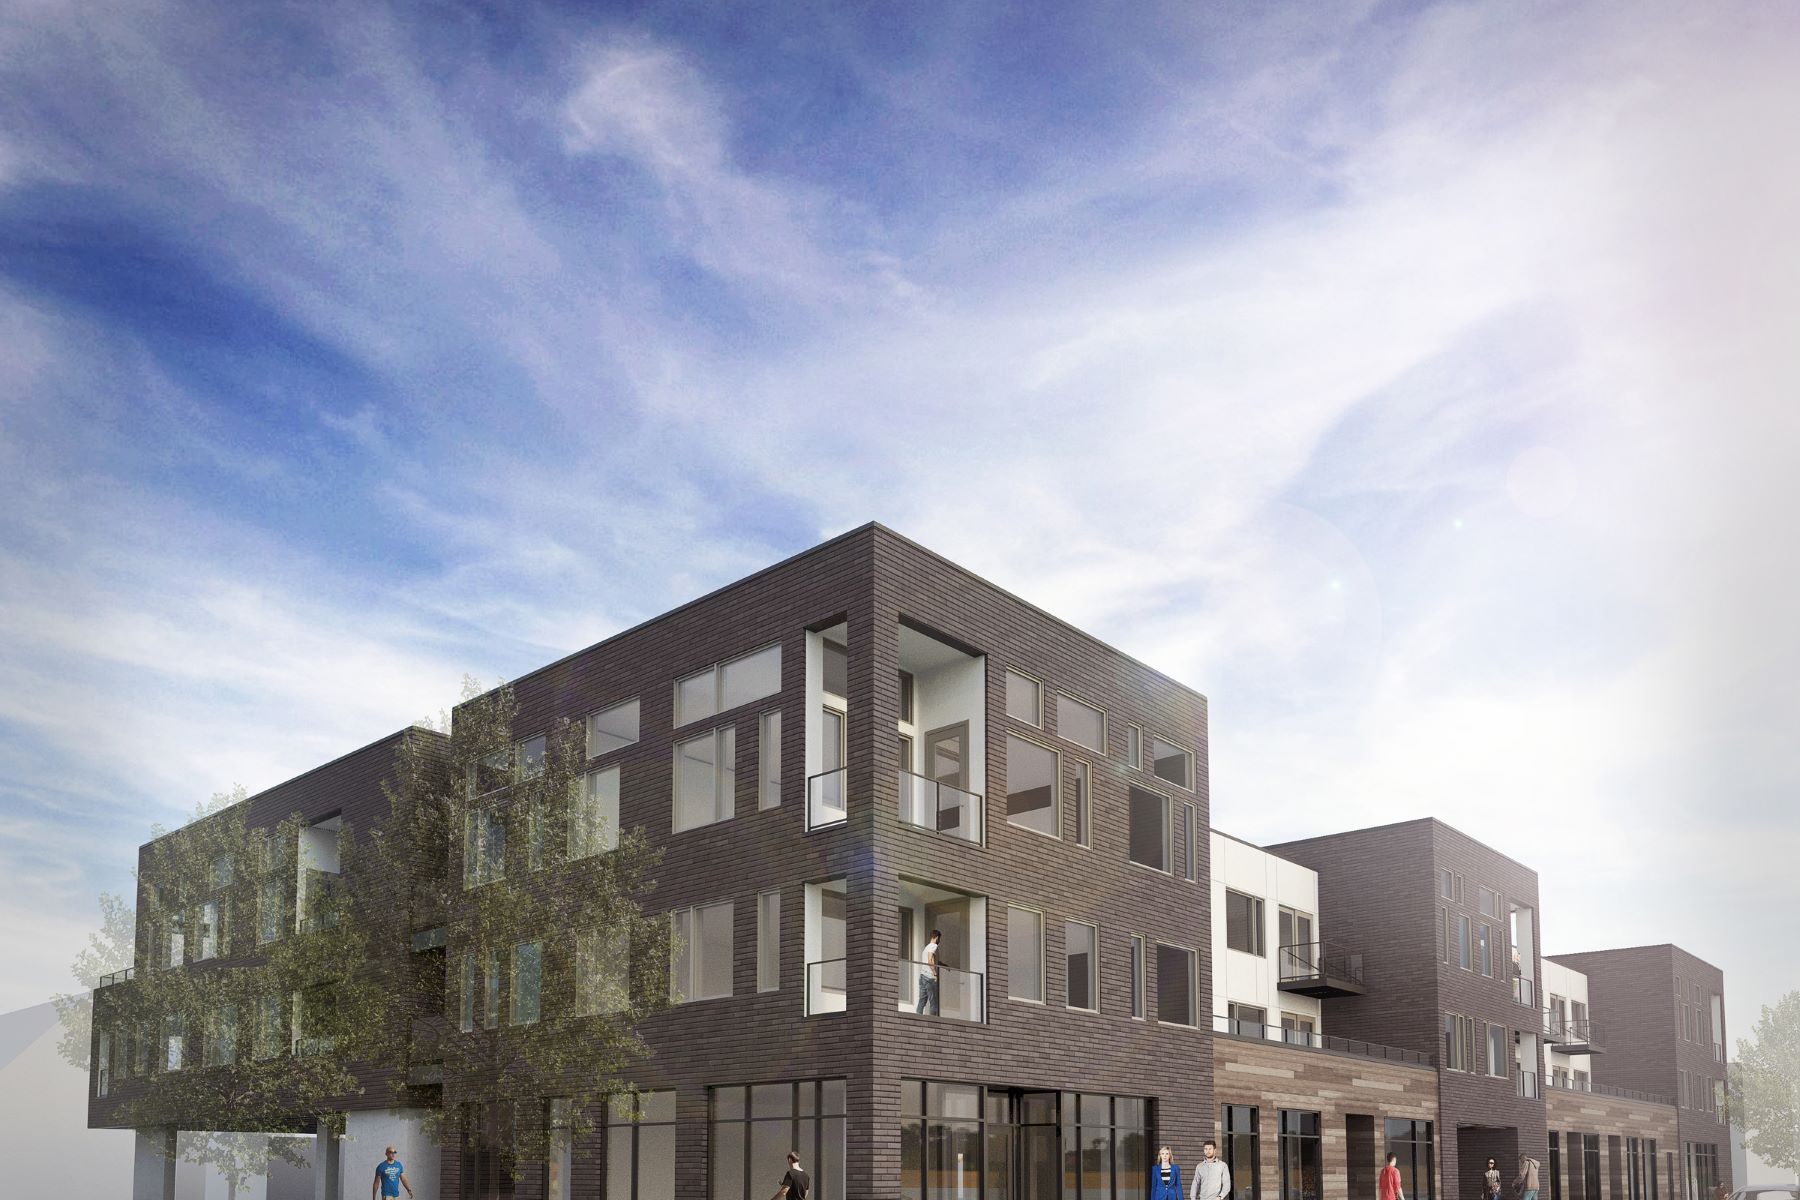 Property for Active at 1616 S Broadway #218 1616 S Broadway #218 Denver, Colorado 80210 United States